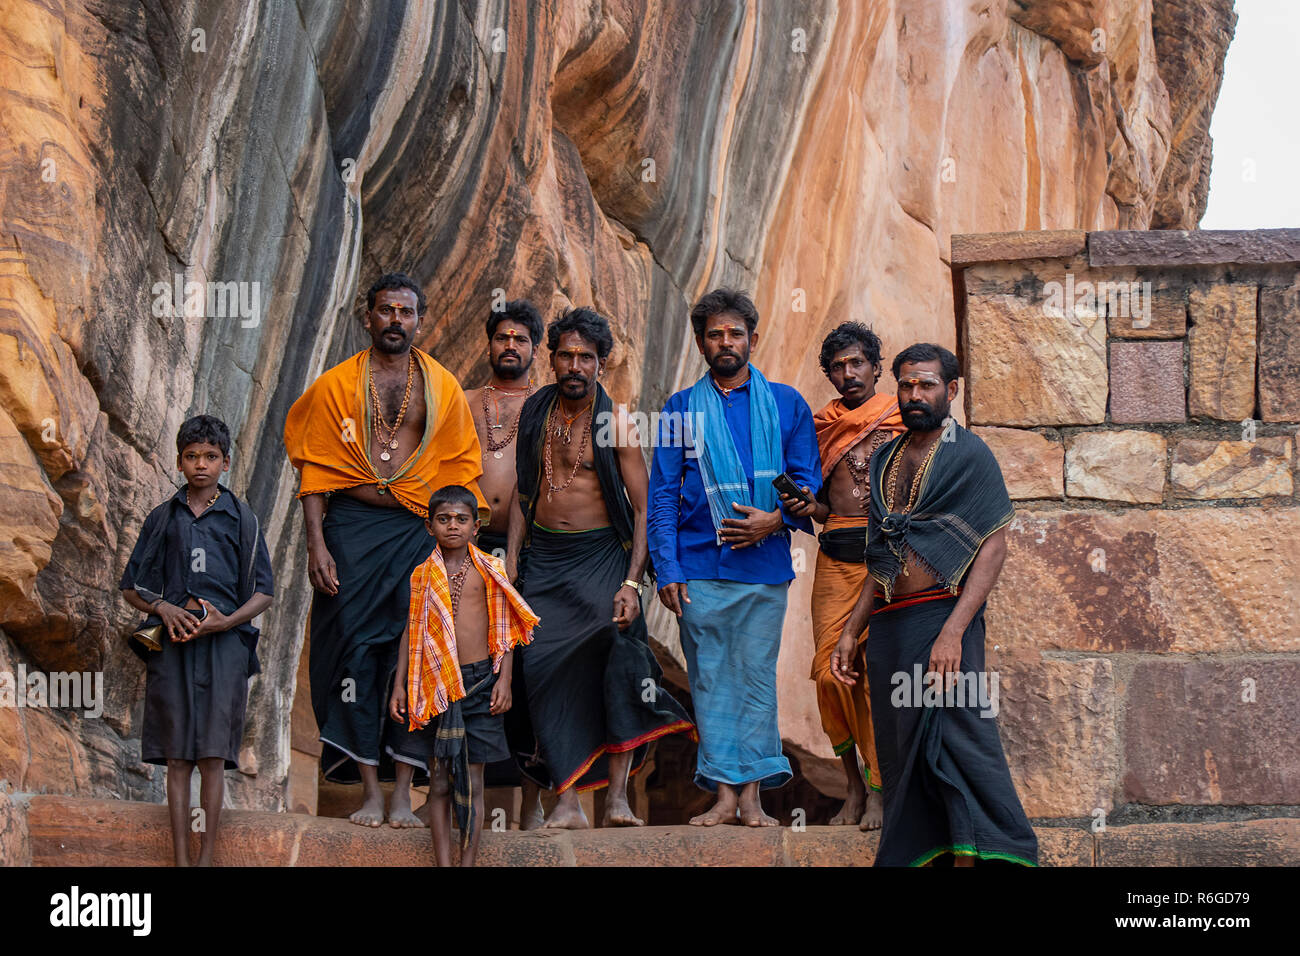 A group of Male Hindu worshipers visit the Hindu cave temples at Badami, India. - Stock Image